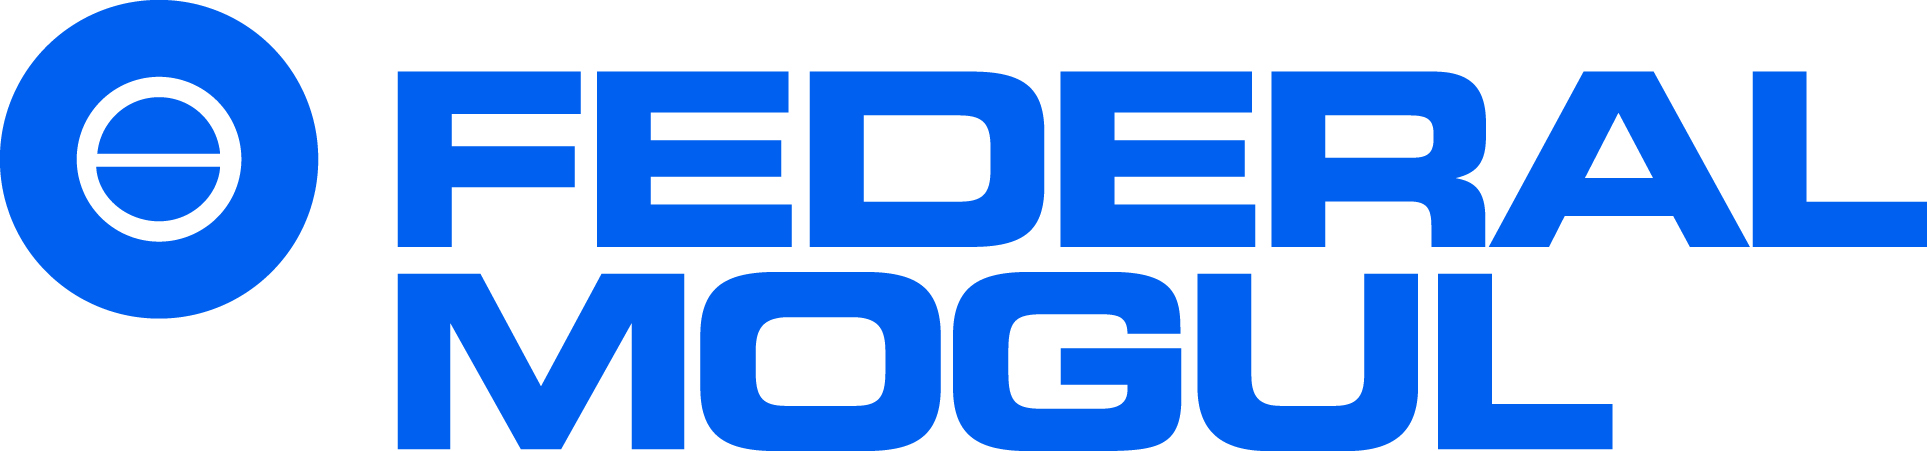 GARAGE PETIT ROMAIN - logo Federal Mogul